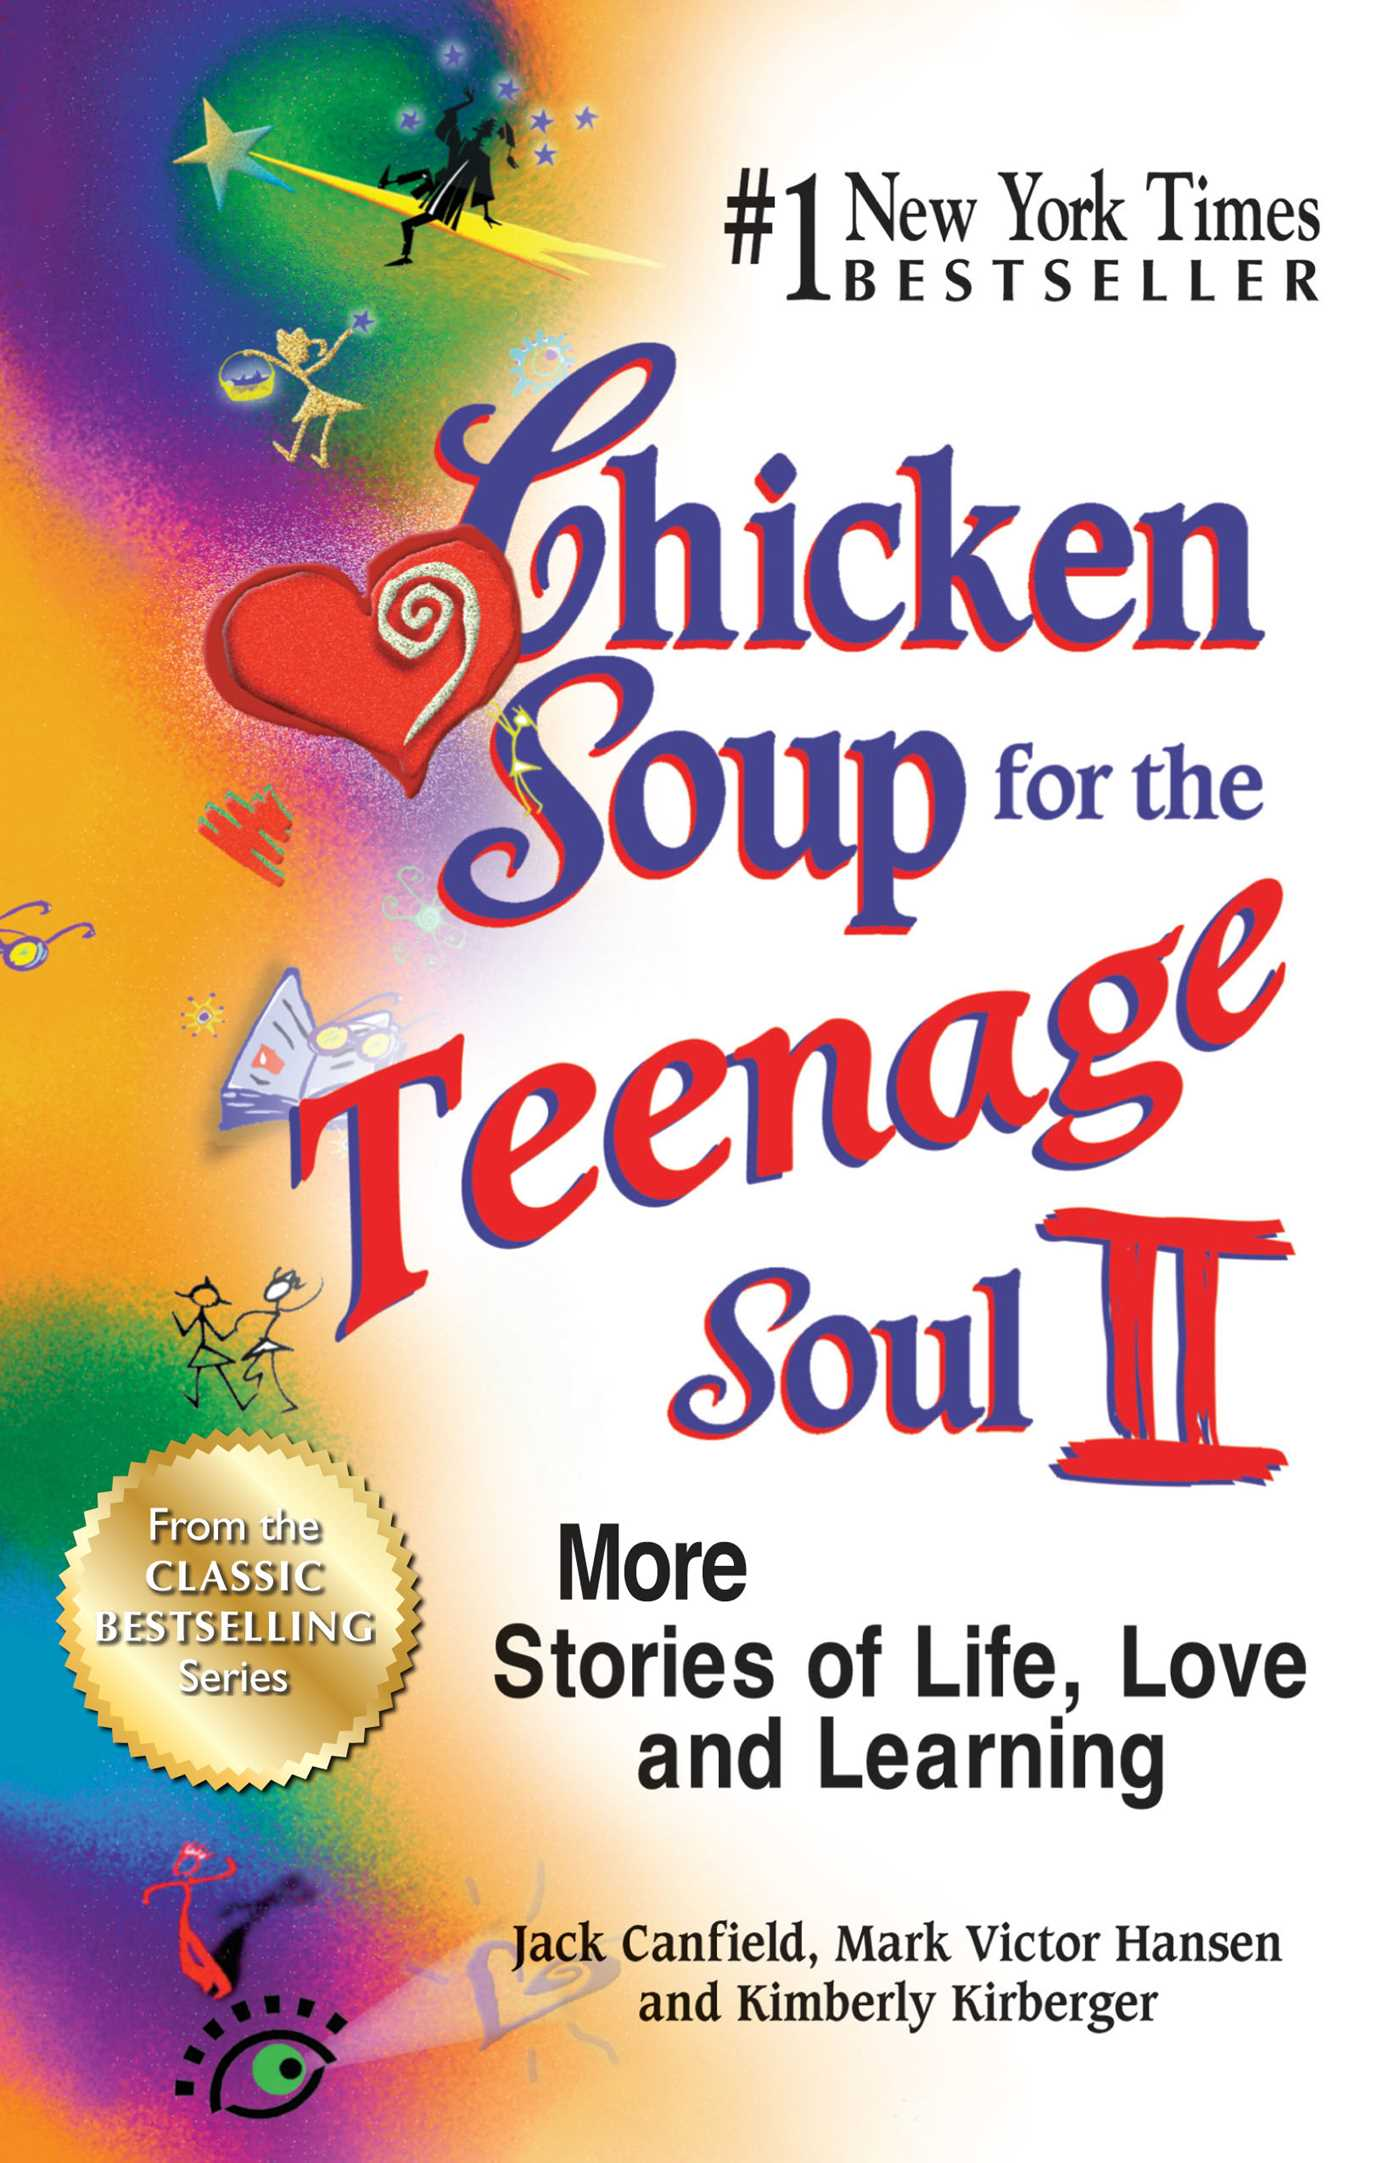 Chicken soup for the teenage soul ii 9781453279359 hr